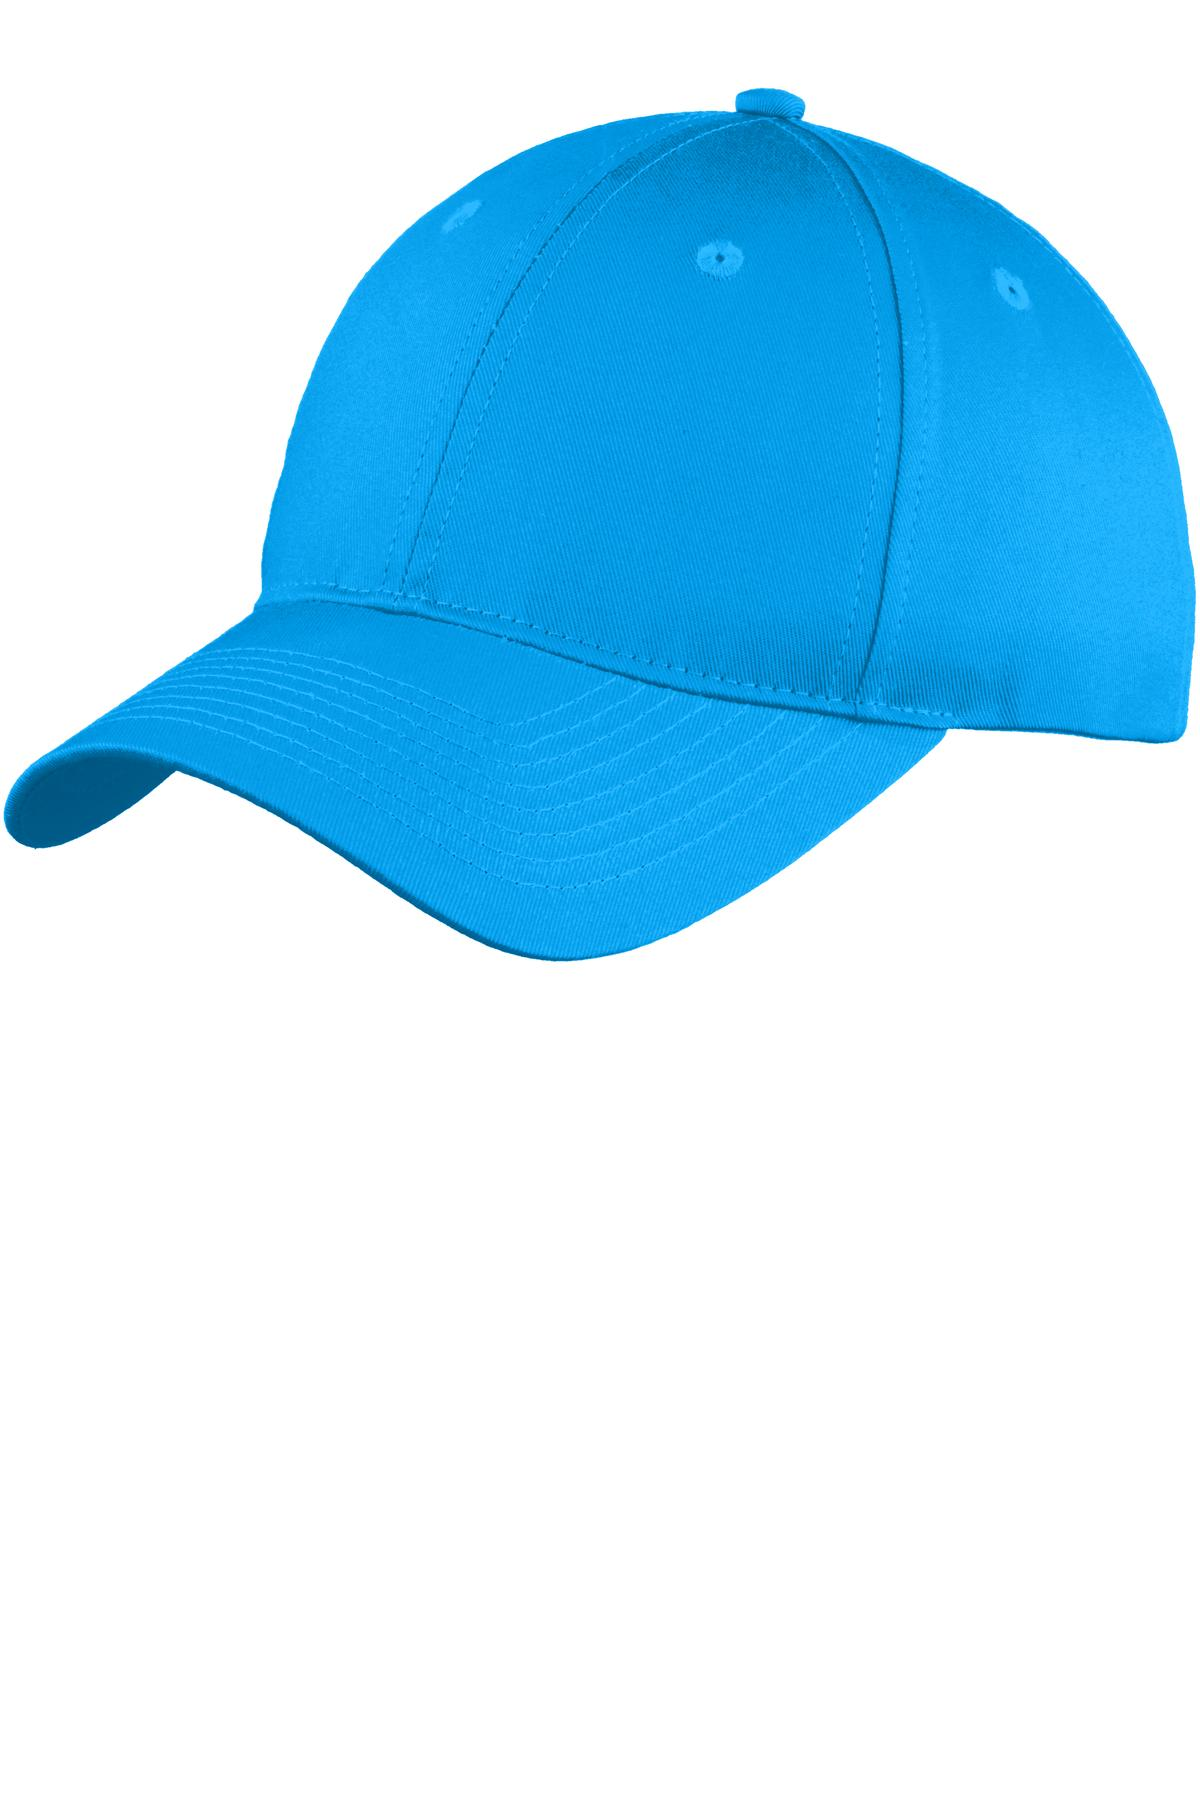 Port & Company ®  Six-Panel Unstructured Twill Cap. C914 - Sapphire